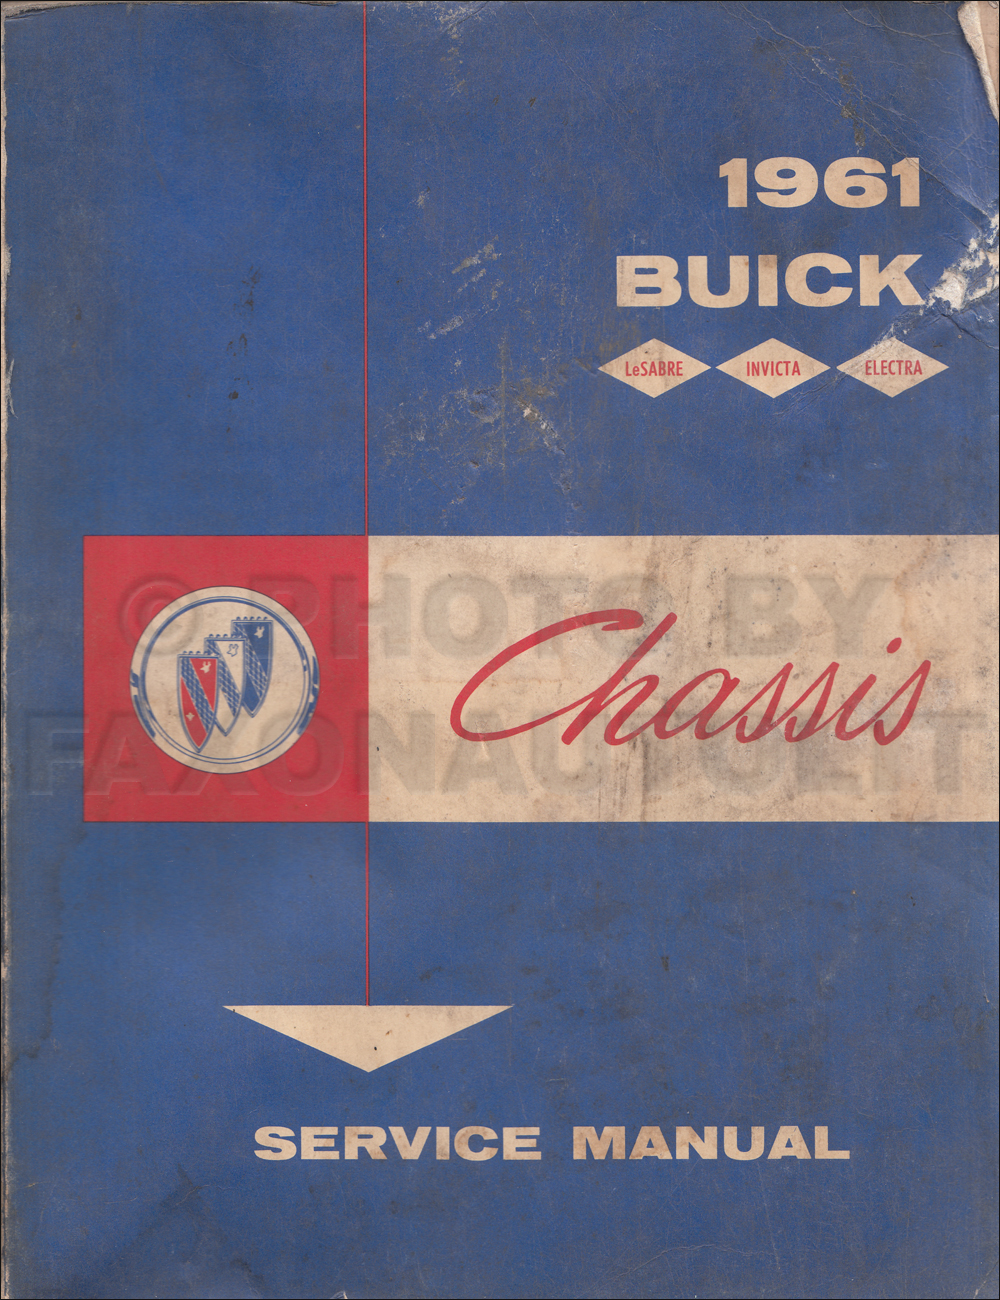 1961 Buick Shop Manual Original - LeSabre, Invicta, Electra